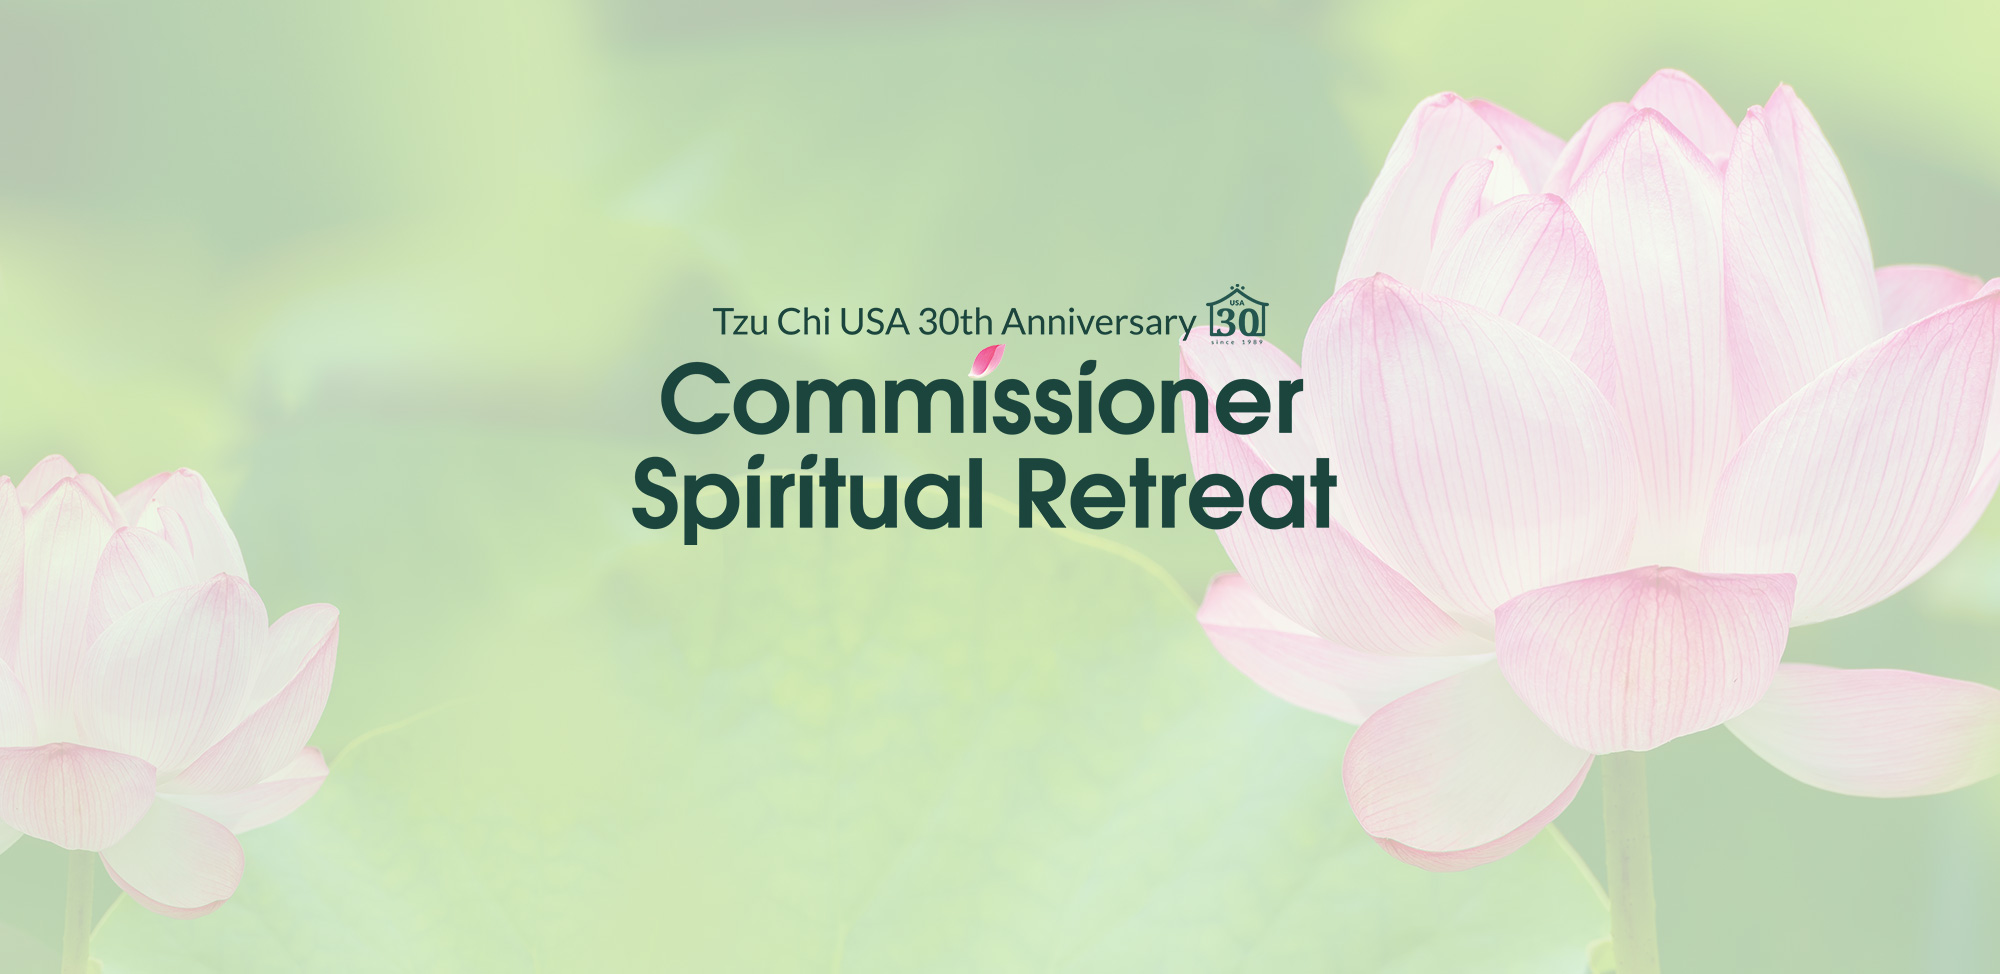 30th-Anniversary-Commissioner-Spiritual-Retreat-Banner-image_2000x974_ENG (1)